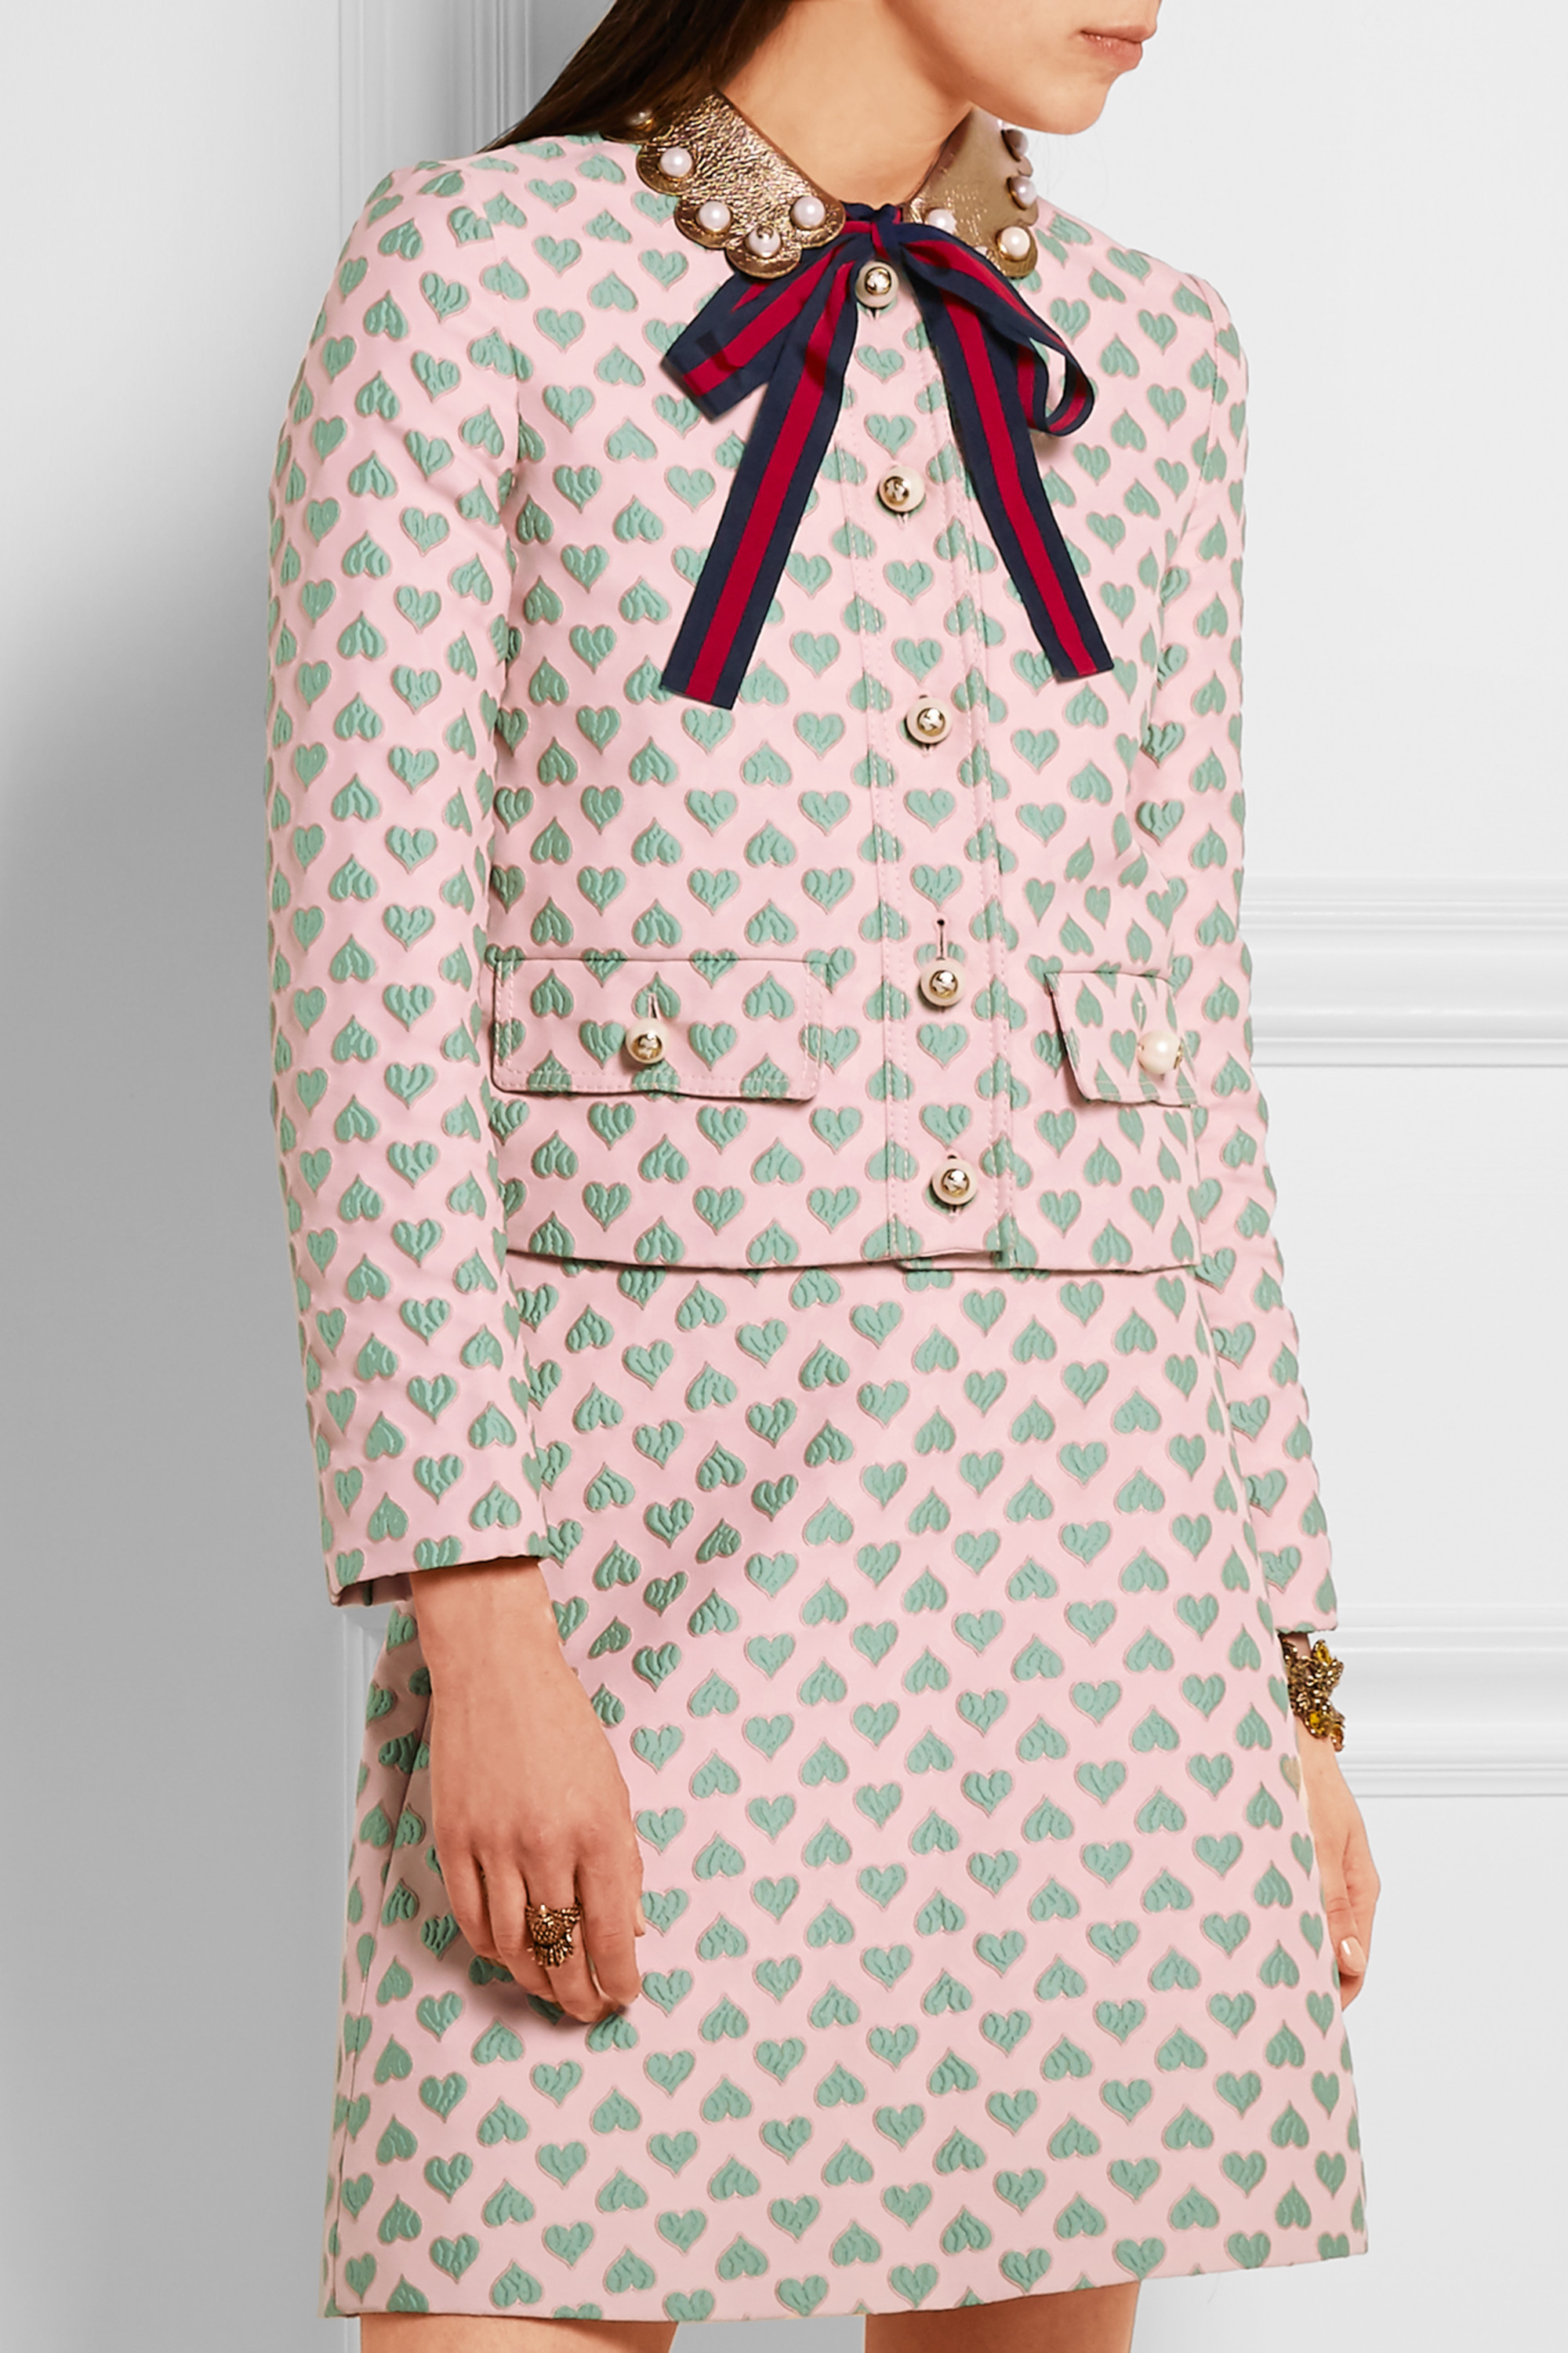 Gucci for NET-A-PORTER Leather-trimmed jacquard jacket